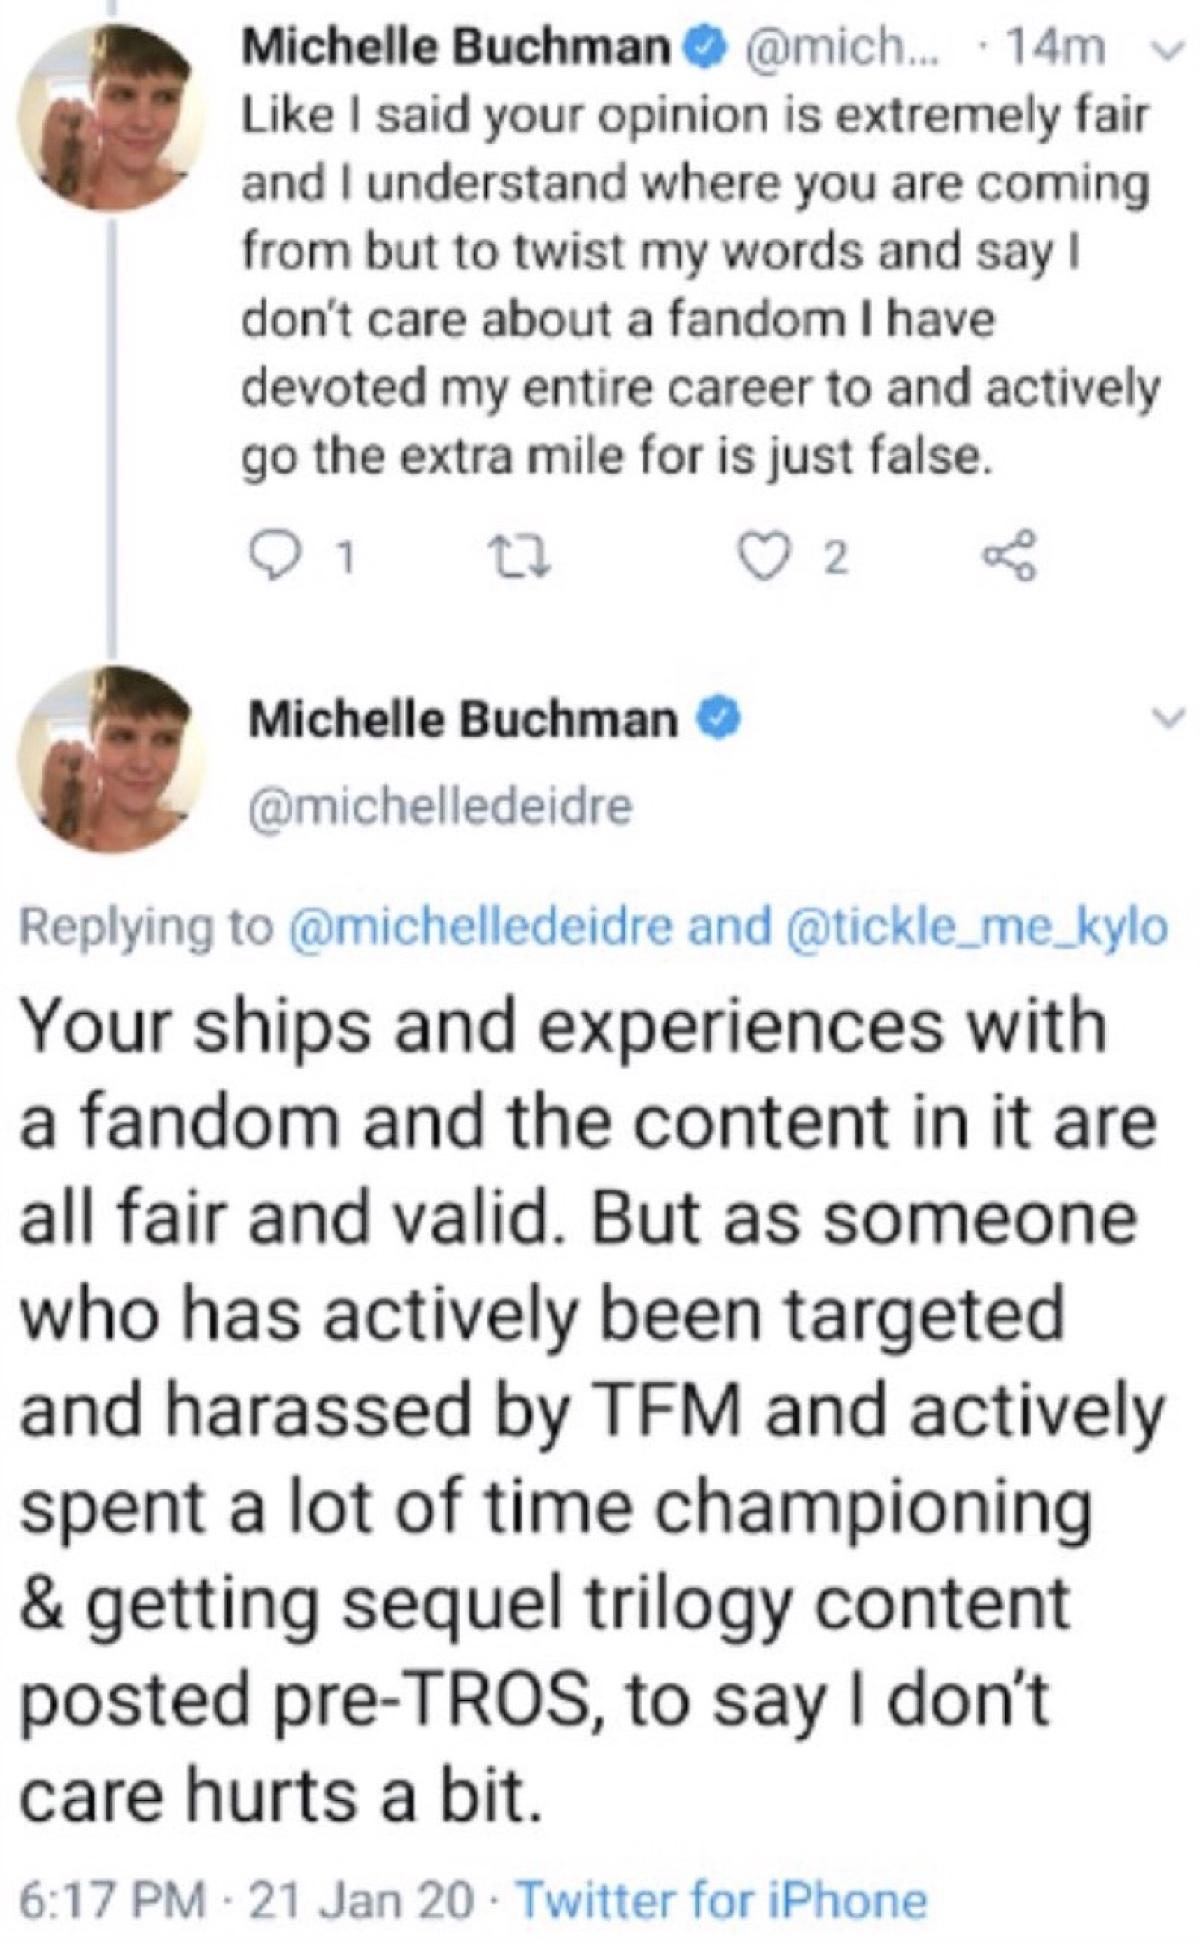 Buchman said the Reylos accusations that she doesn't care were hurtful (Twitter - @saltandrockets)